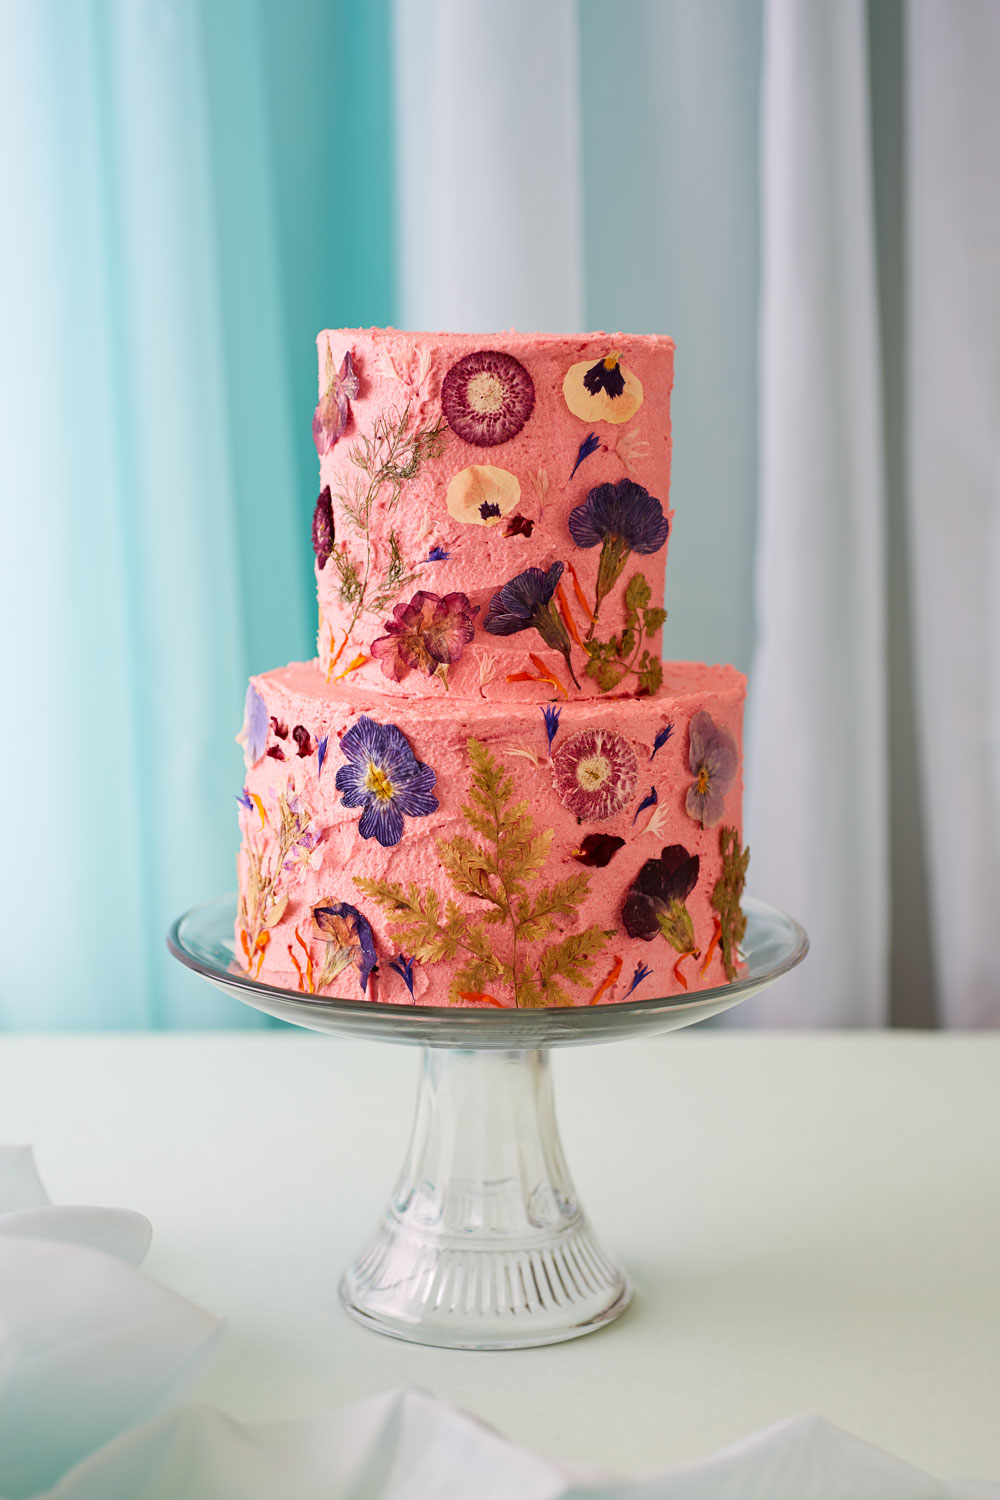 How To Decorate A Wedding Or Celebration Cake With Edible ...